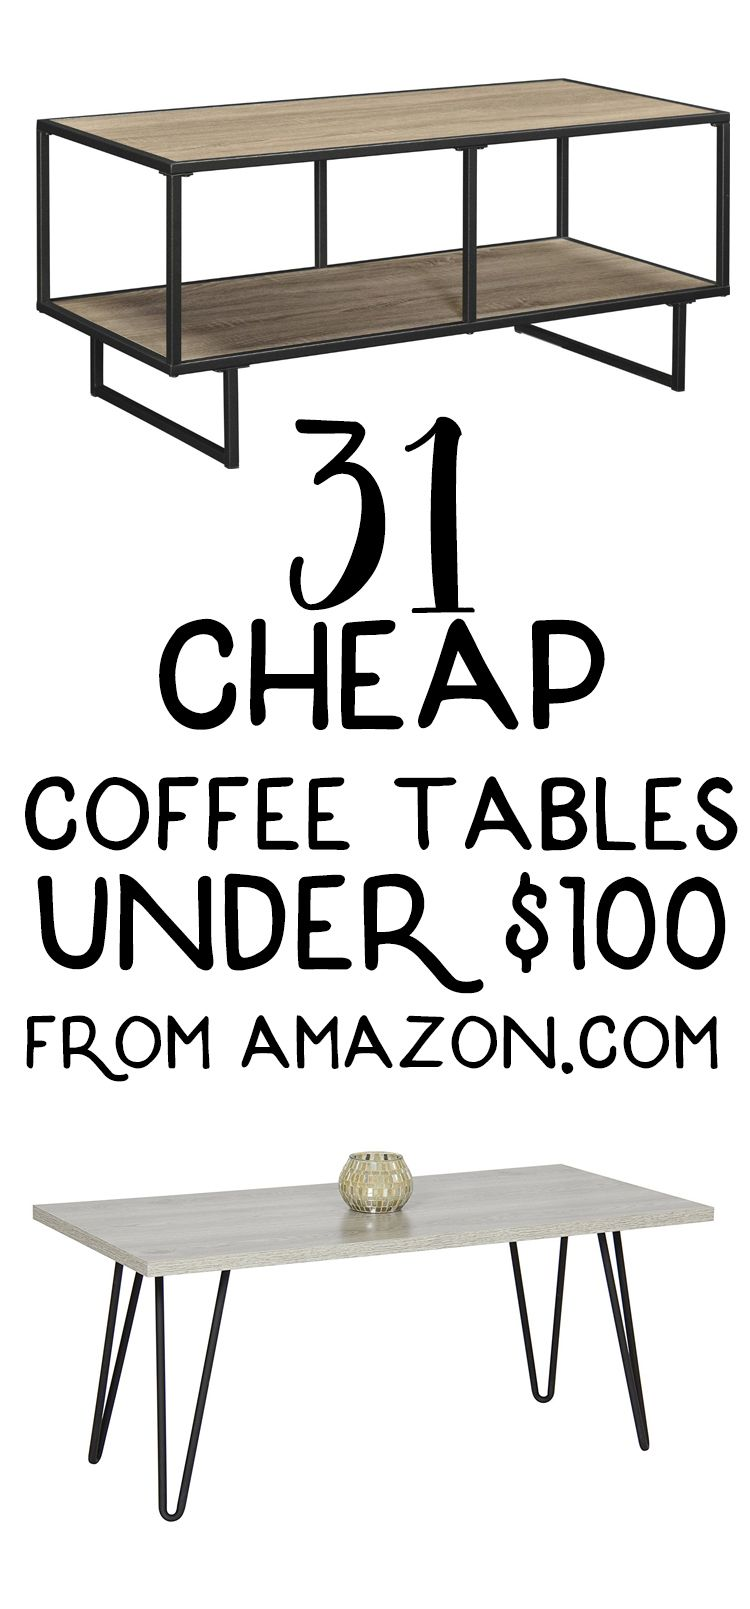 Cheap Coffee Tables Under $100 That Work For Every Style | Cheap ...